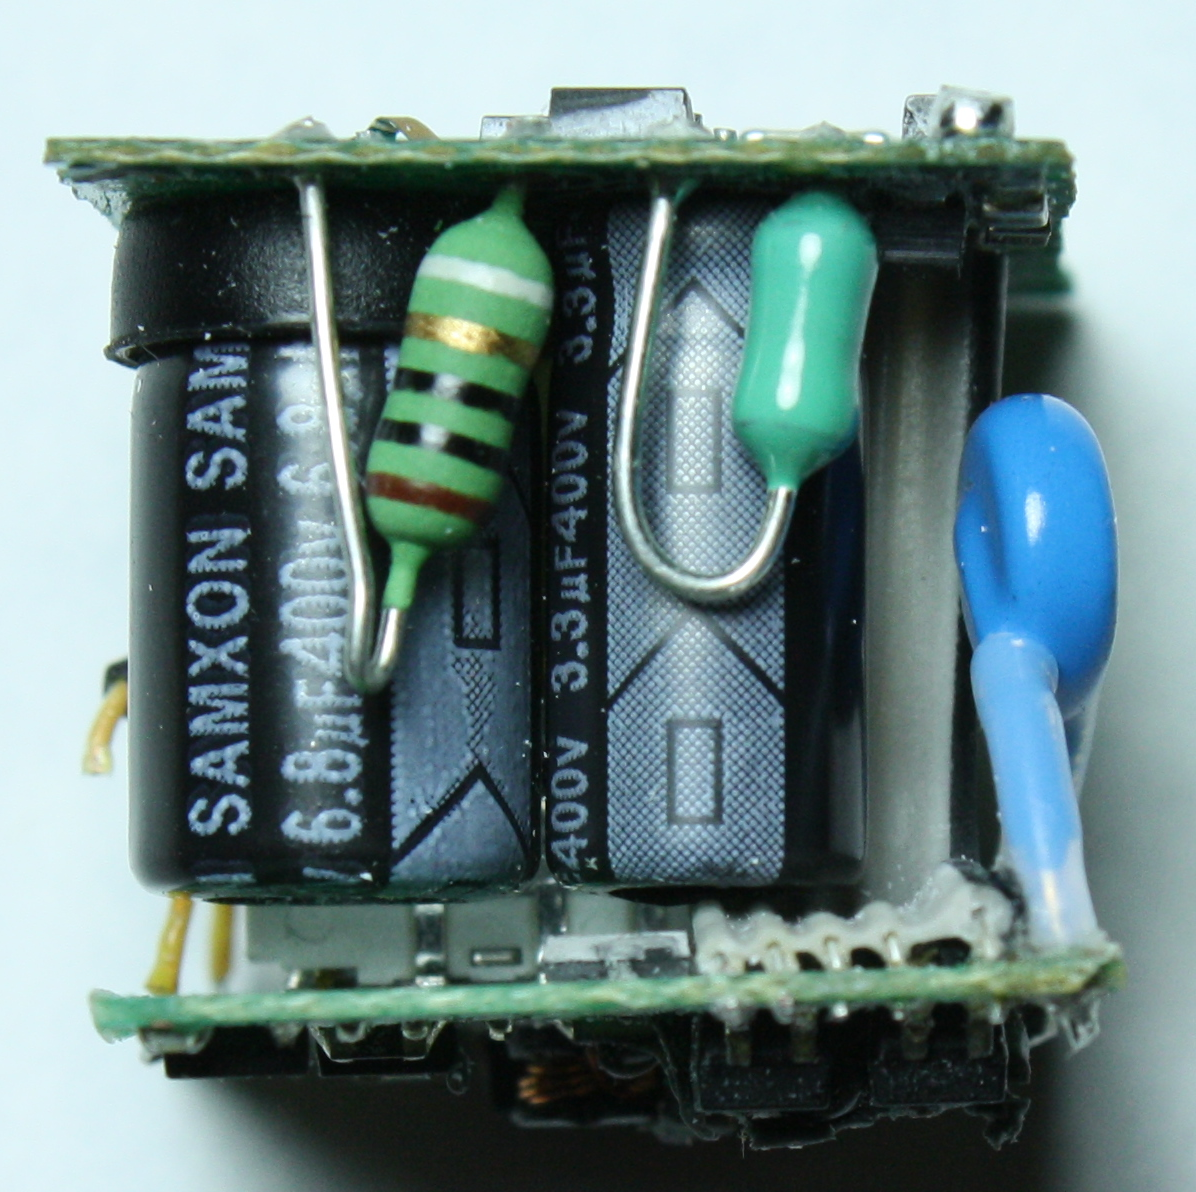 Apple Iphone Charger Teardown Quality In A Tiny Expensive Package Capacitor Charging Circuit Showing The Fusible Resistor Striped Inductor Green